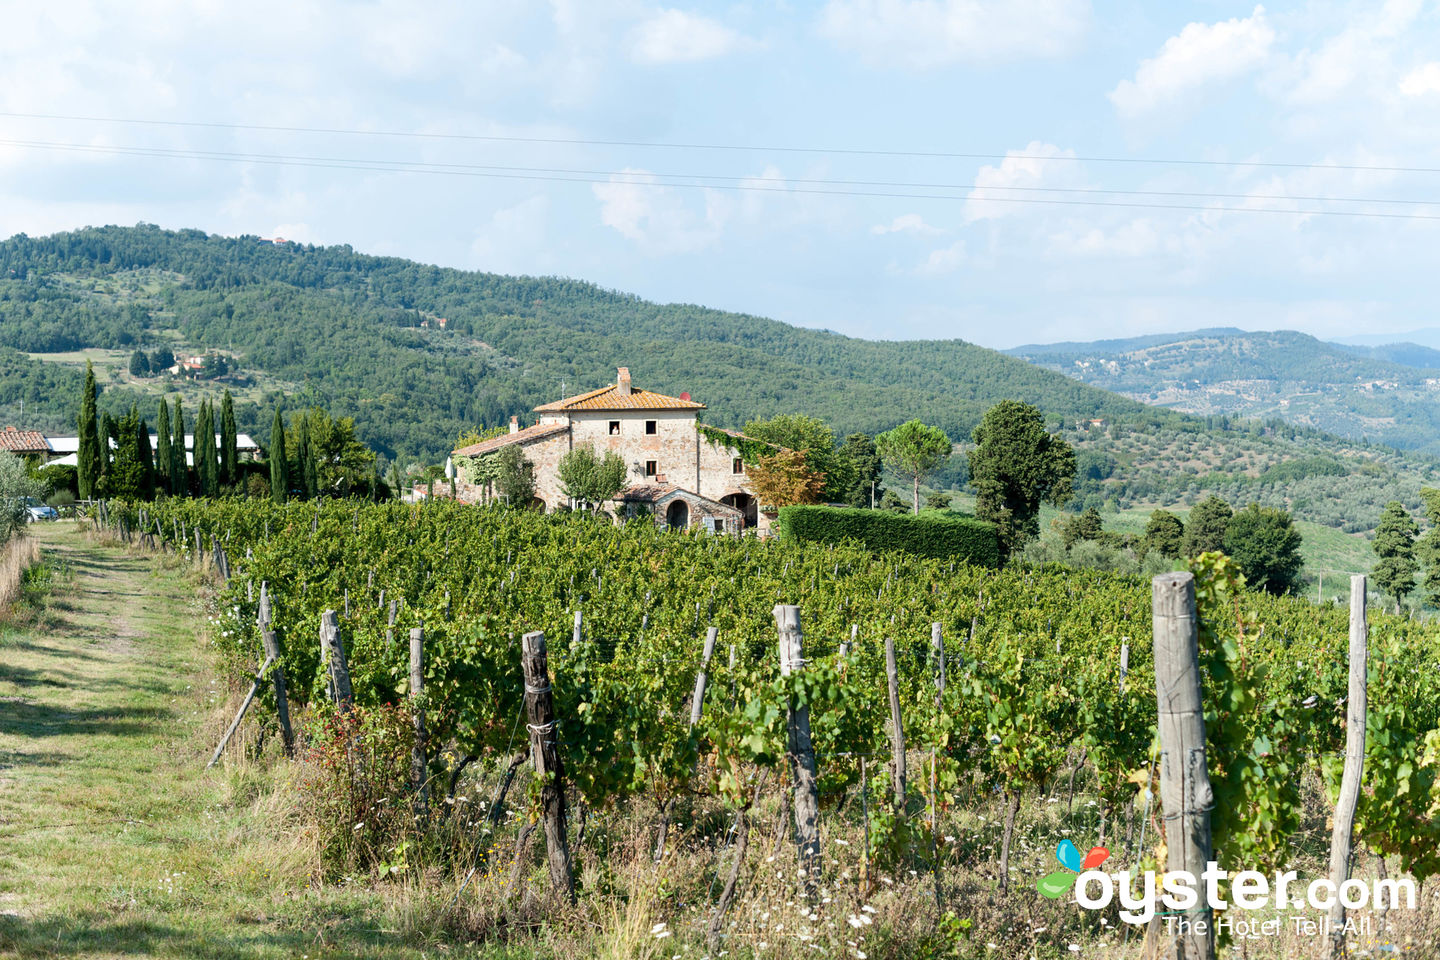 The Ultimate Guide to Italian Wine Regions